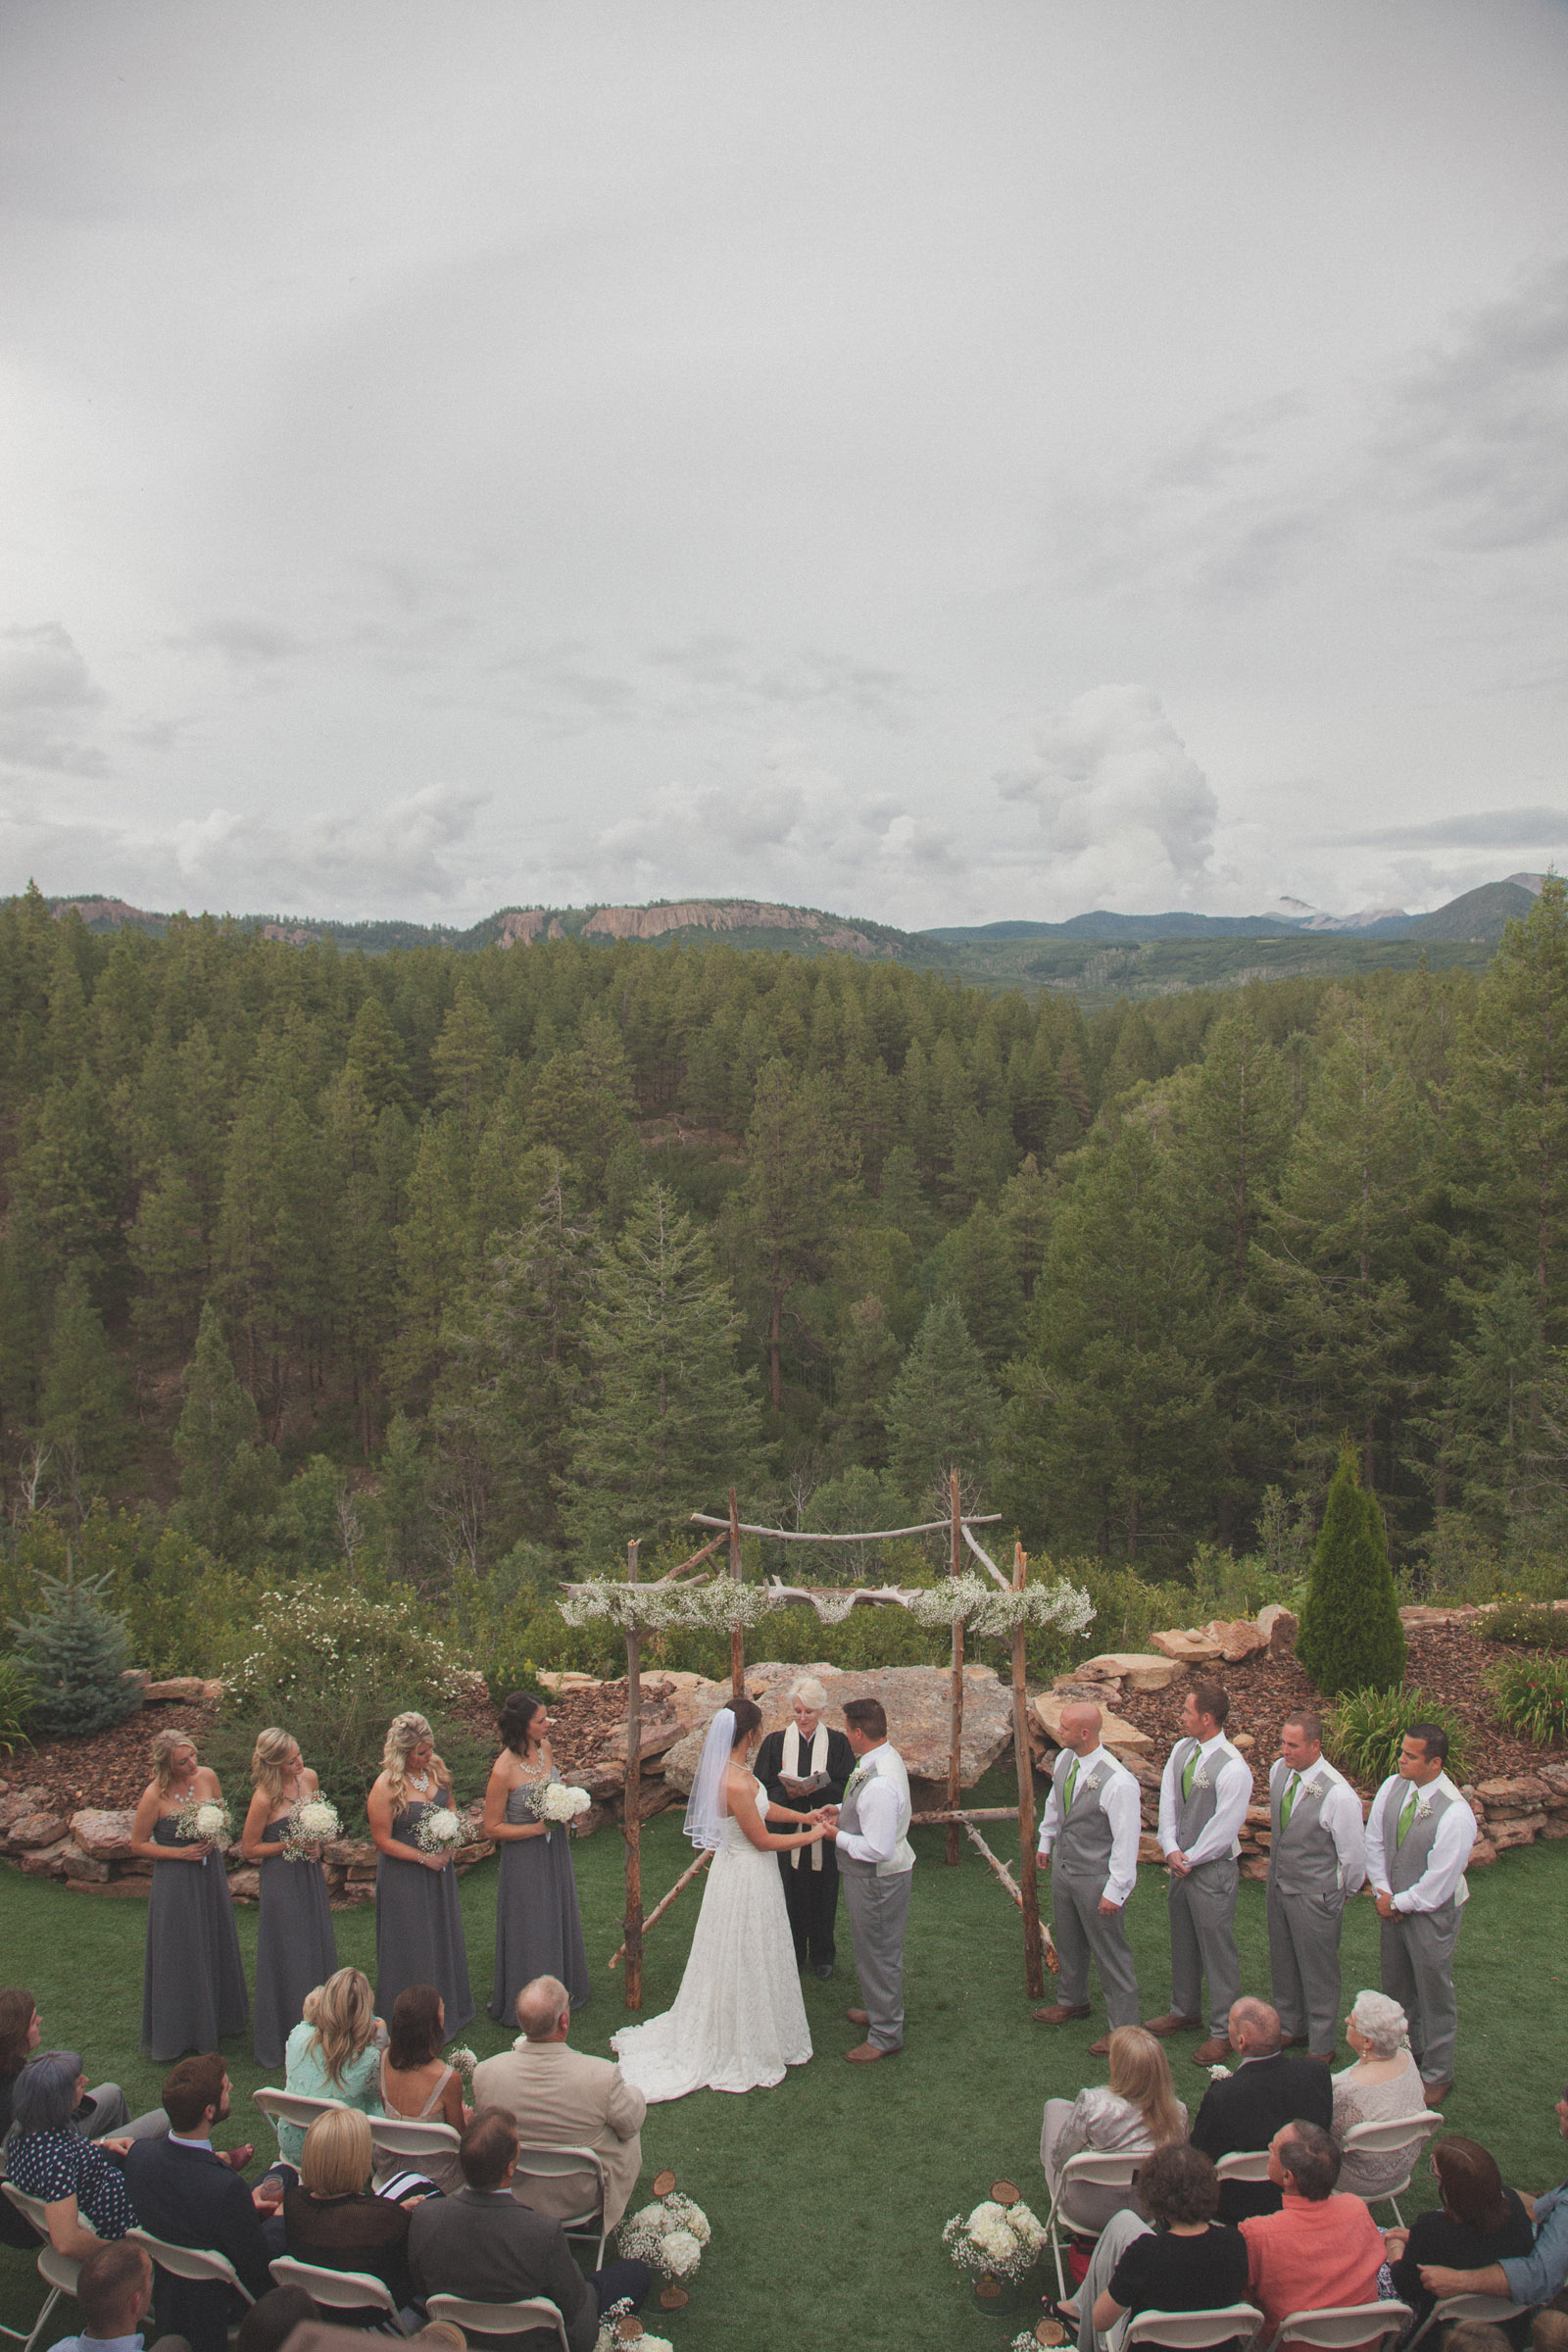 135-wedding-ideas-ideas-wedding-forest-mason-jars-backdrop-colorado-mancos-ceremony